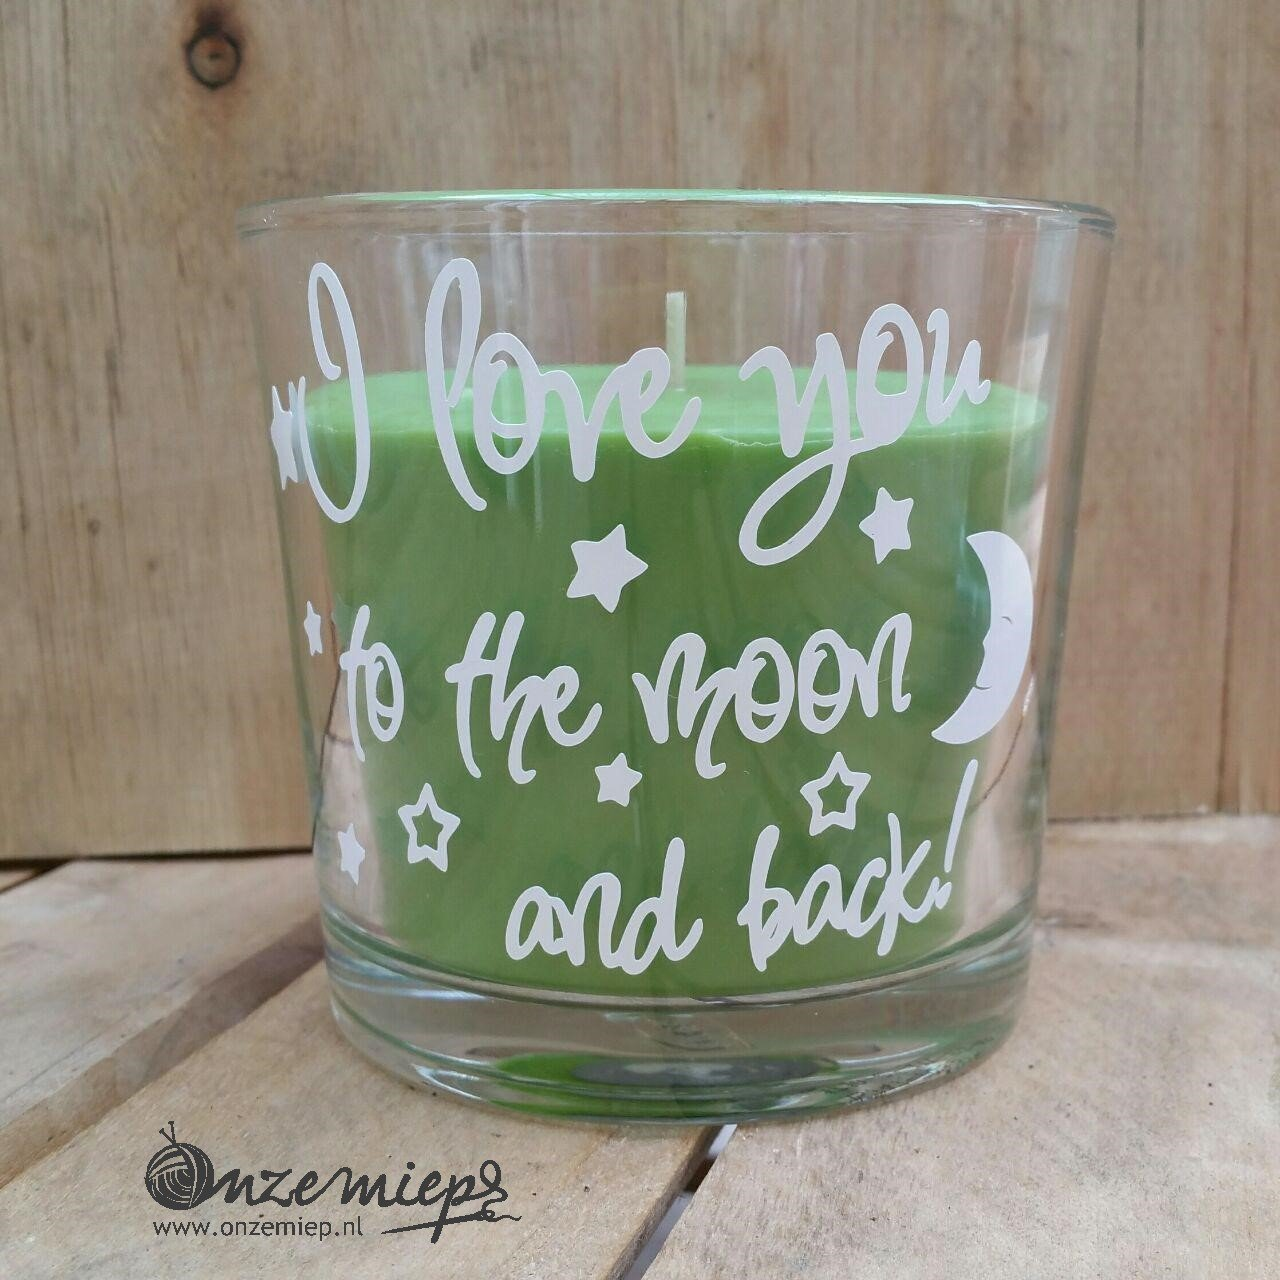 "Groene geurkaars met de tekst ""I love you to the moon and back"""